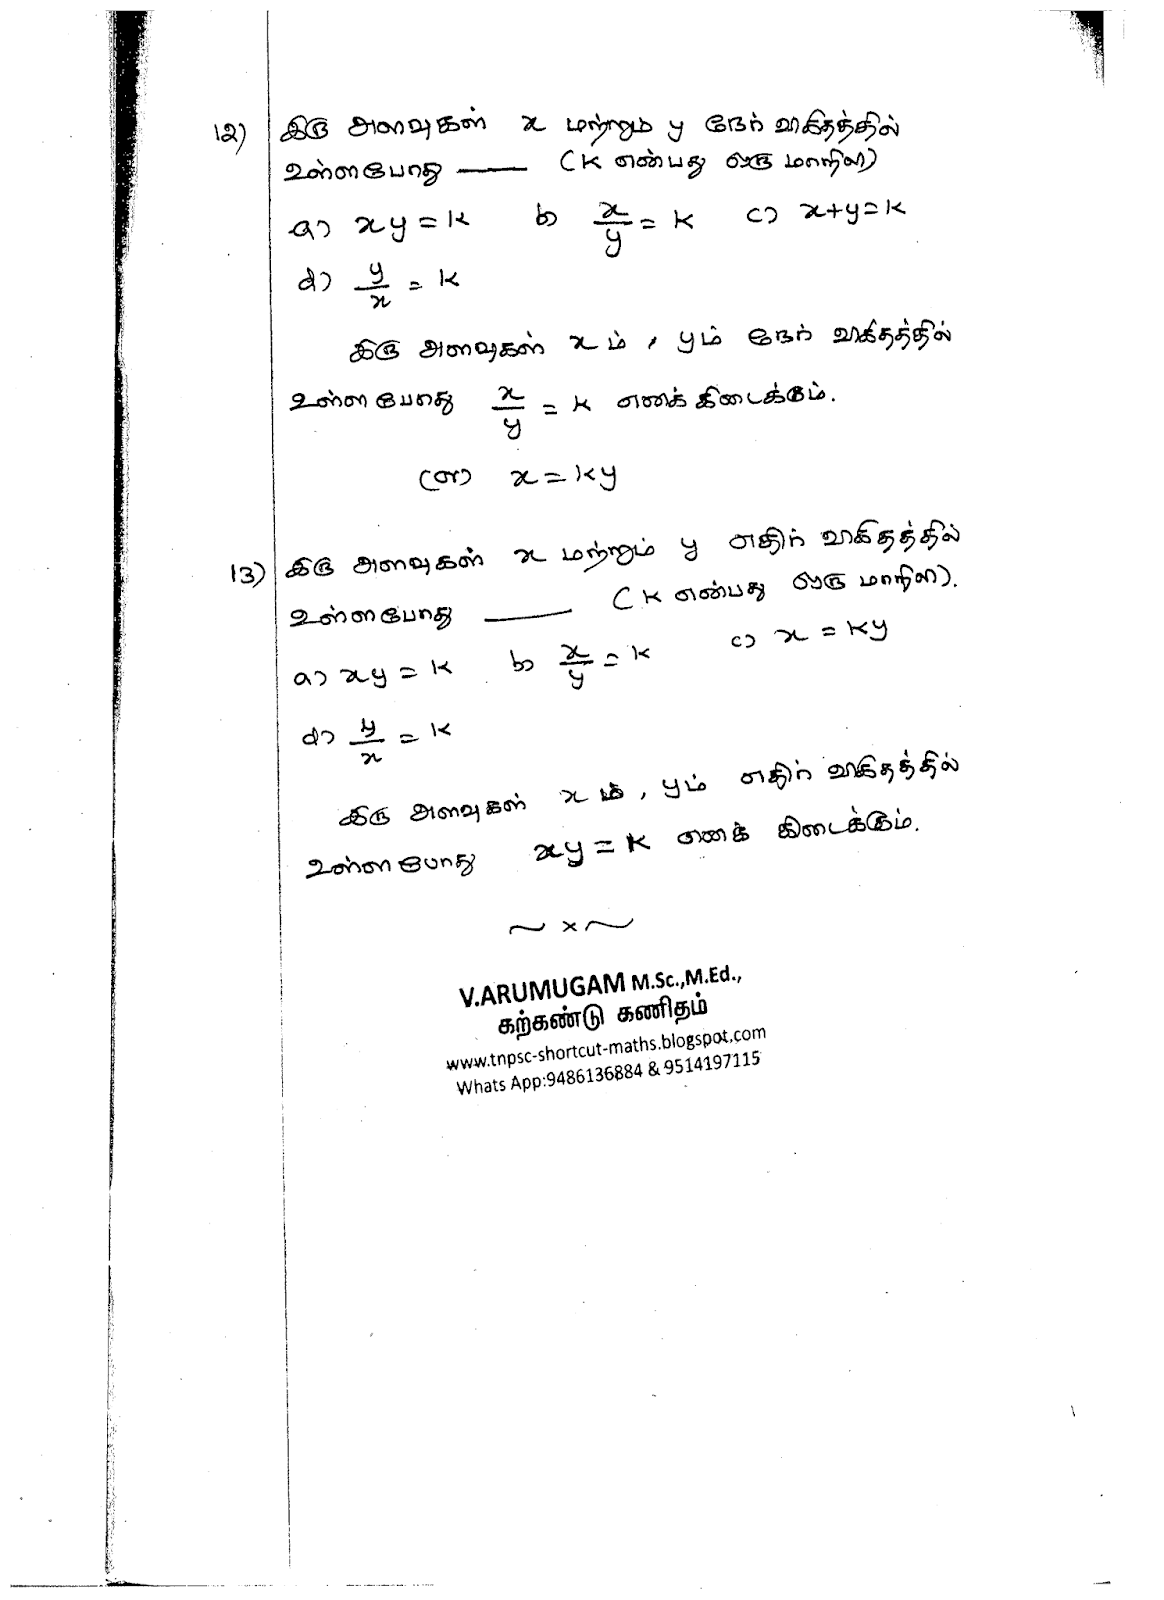 2019 - NEW SYLLABUS - VII STD - I TERM - UNIT-4: DIRECT & INVERSE PROPORTION - PAGE - 29/29